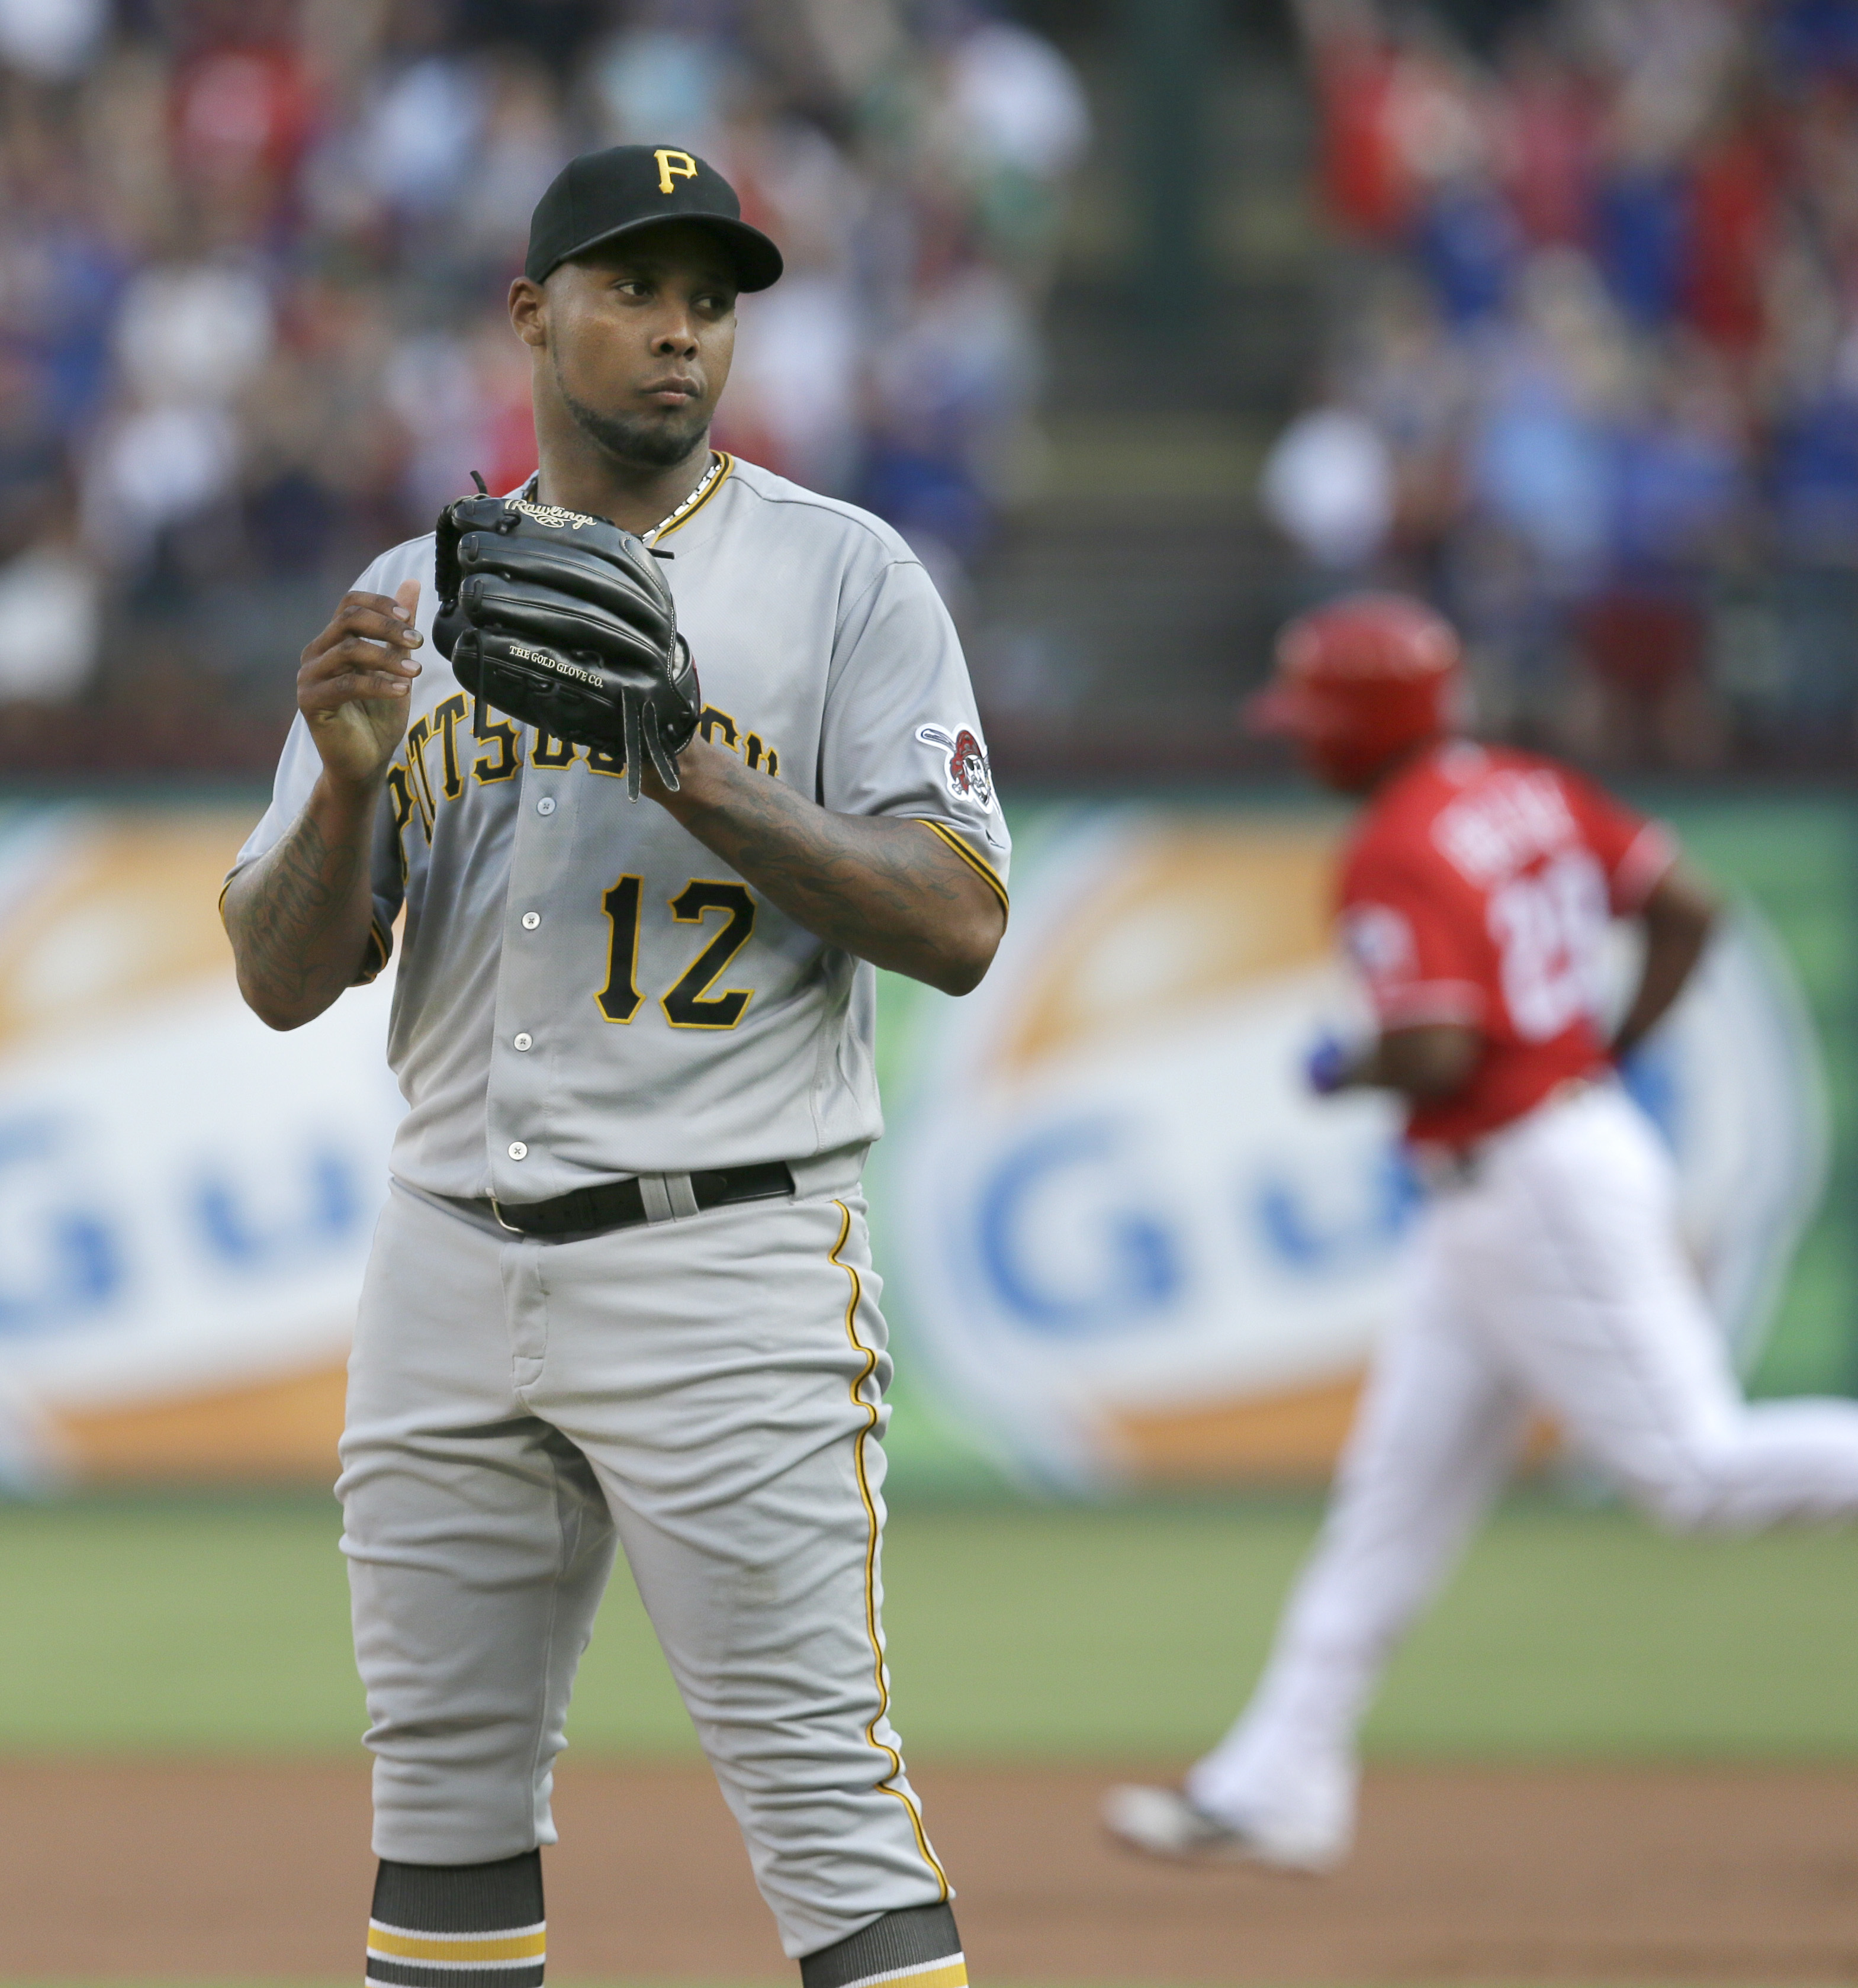 Pittsburgh Pirates starting pitcher Juan Nicasio (12) stands on the mound as Texas Rangers' Adrian Beltre runs the bases after hitting a home run during the first inning of a baseball game in Arlington, Texas, Saturday, May 28, 2016. (AP Photo/LM Otero)